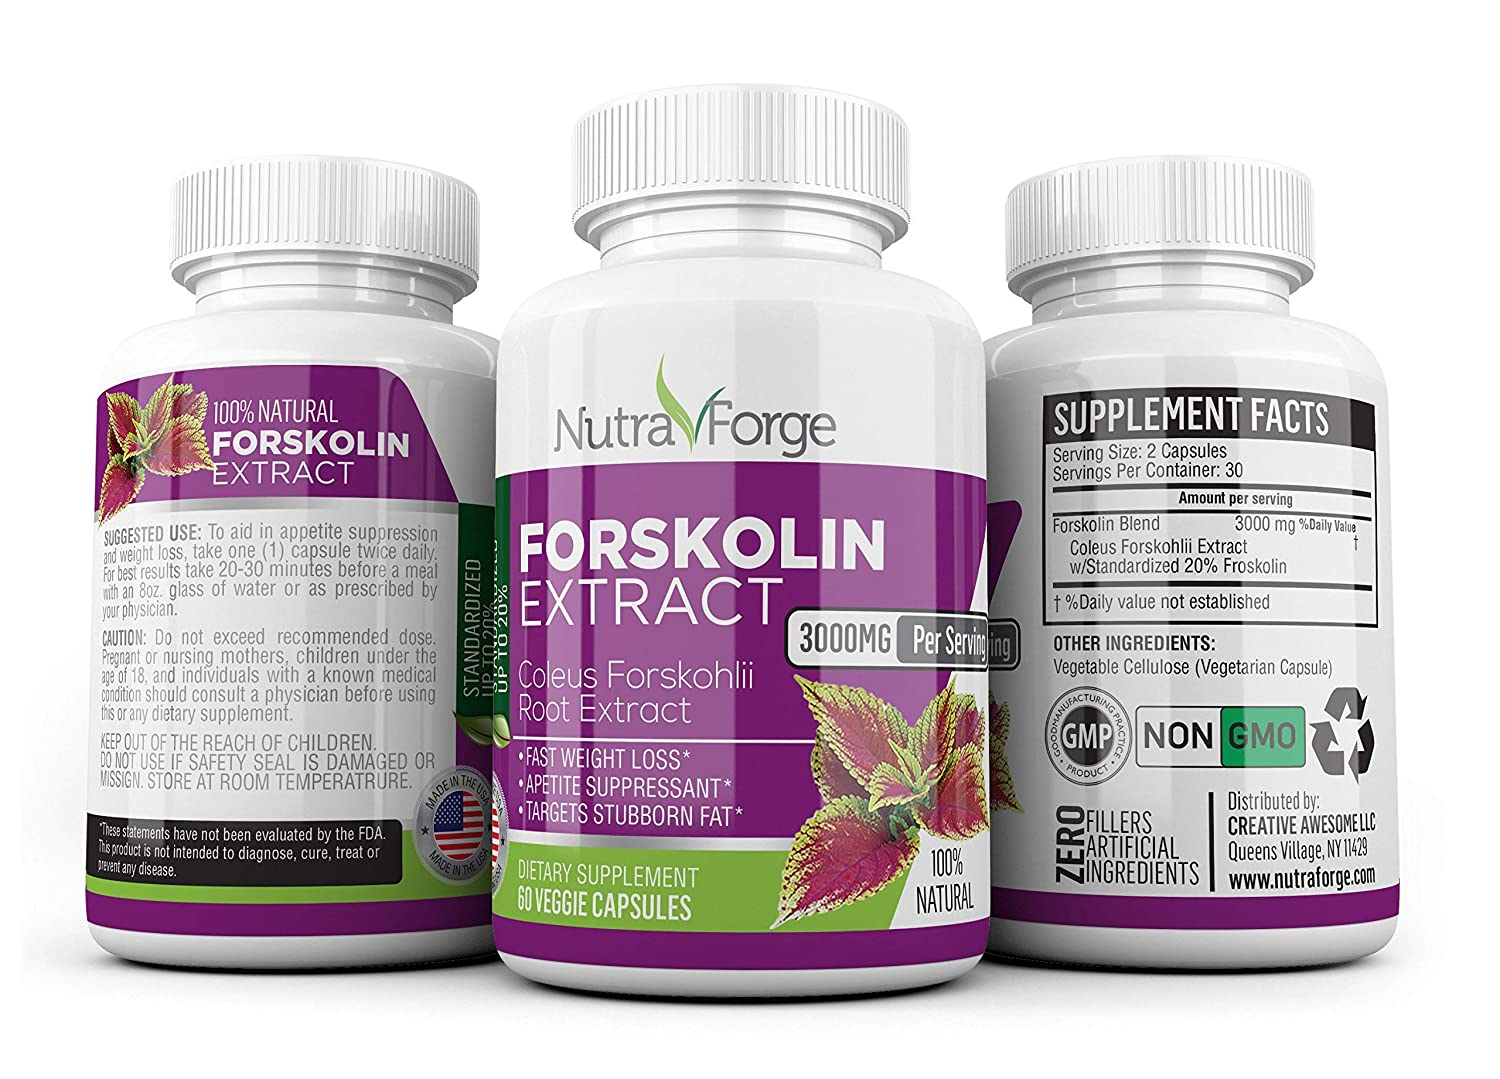 Pure Forskolin 3000mg Max Strength Forskolin Extract For Weight Loss Premium Appetite